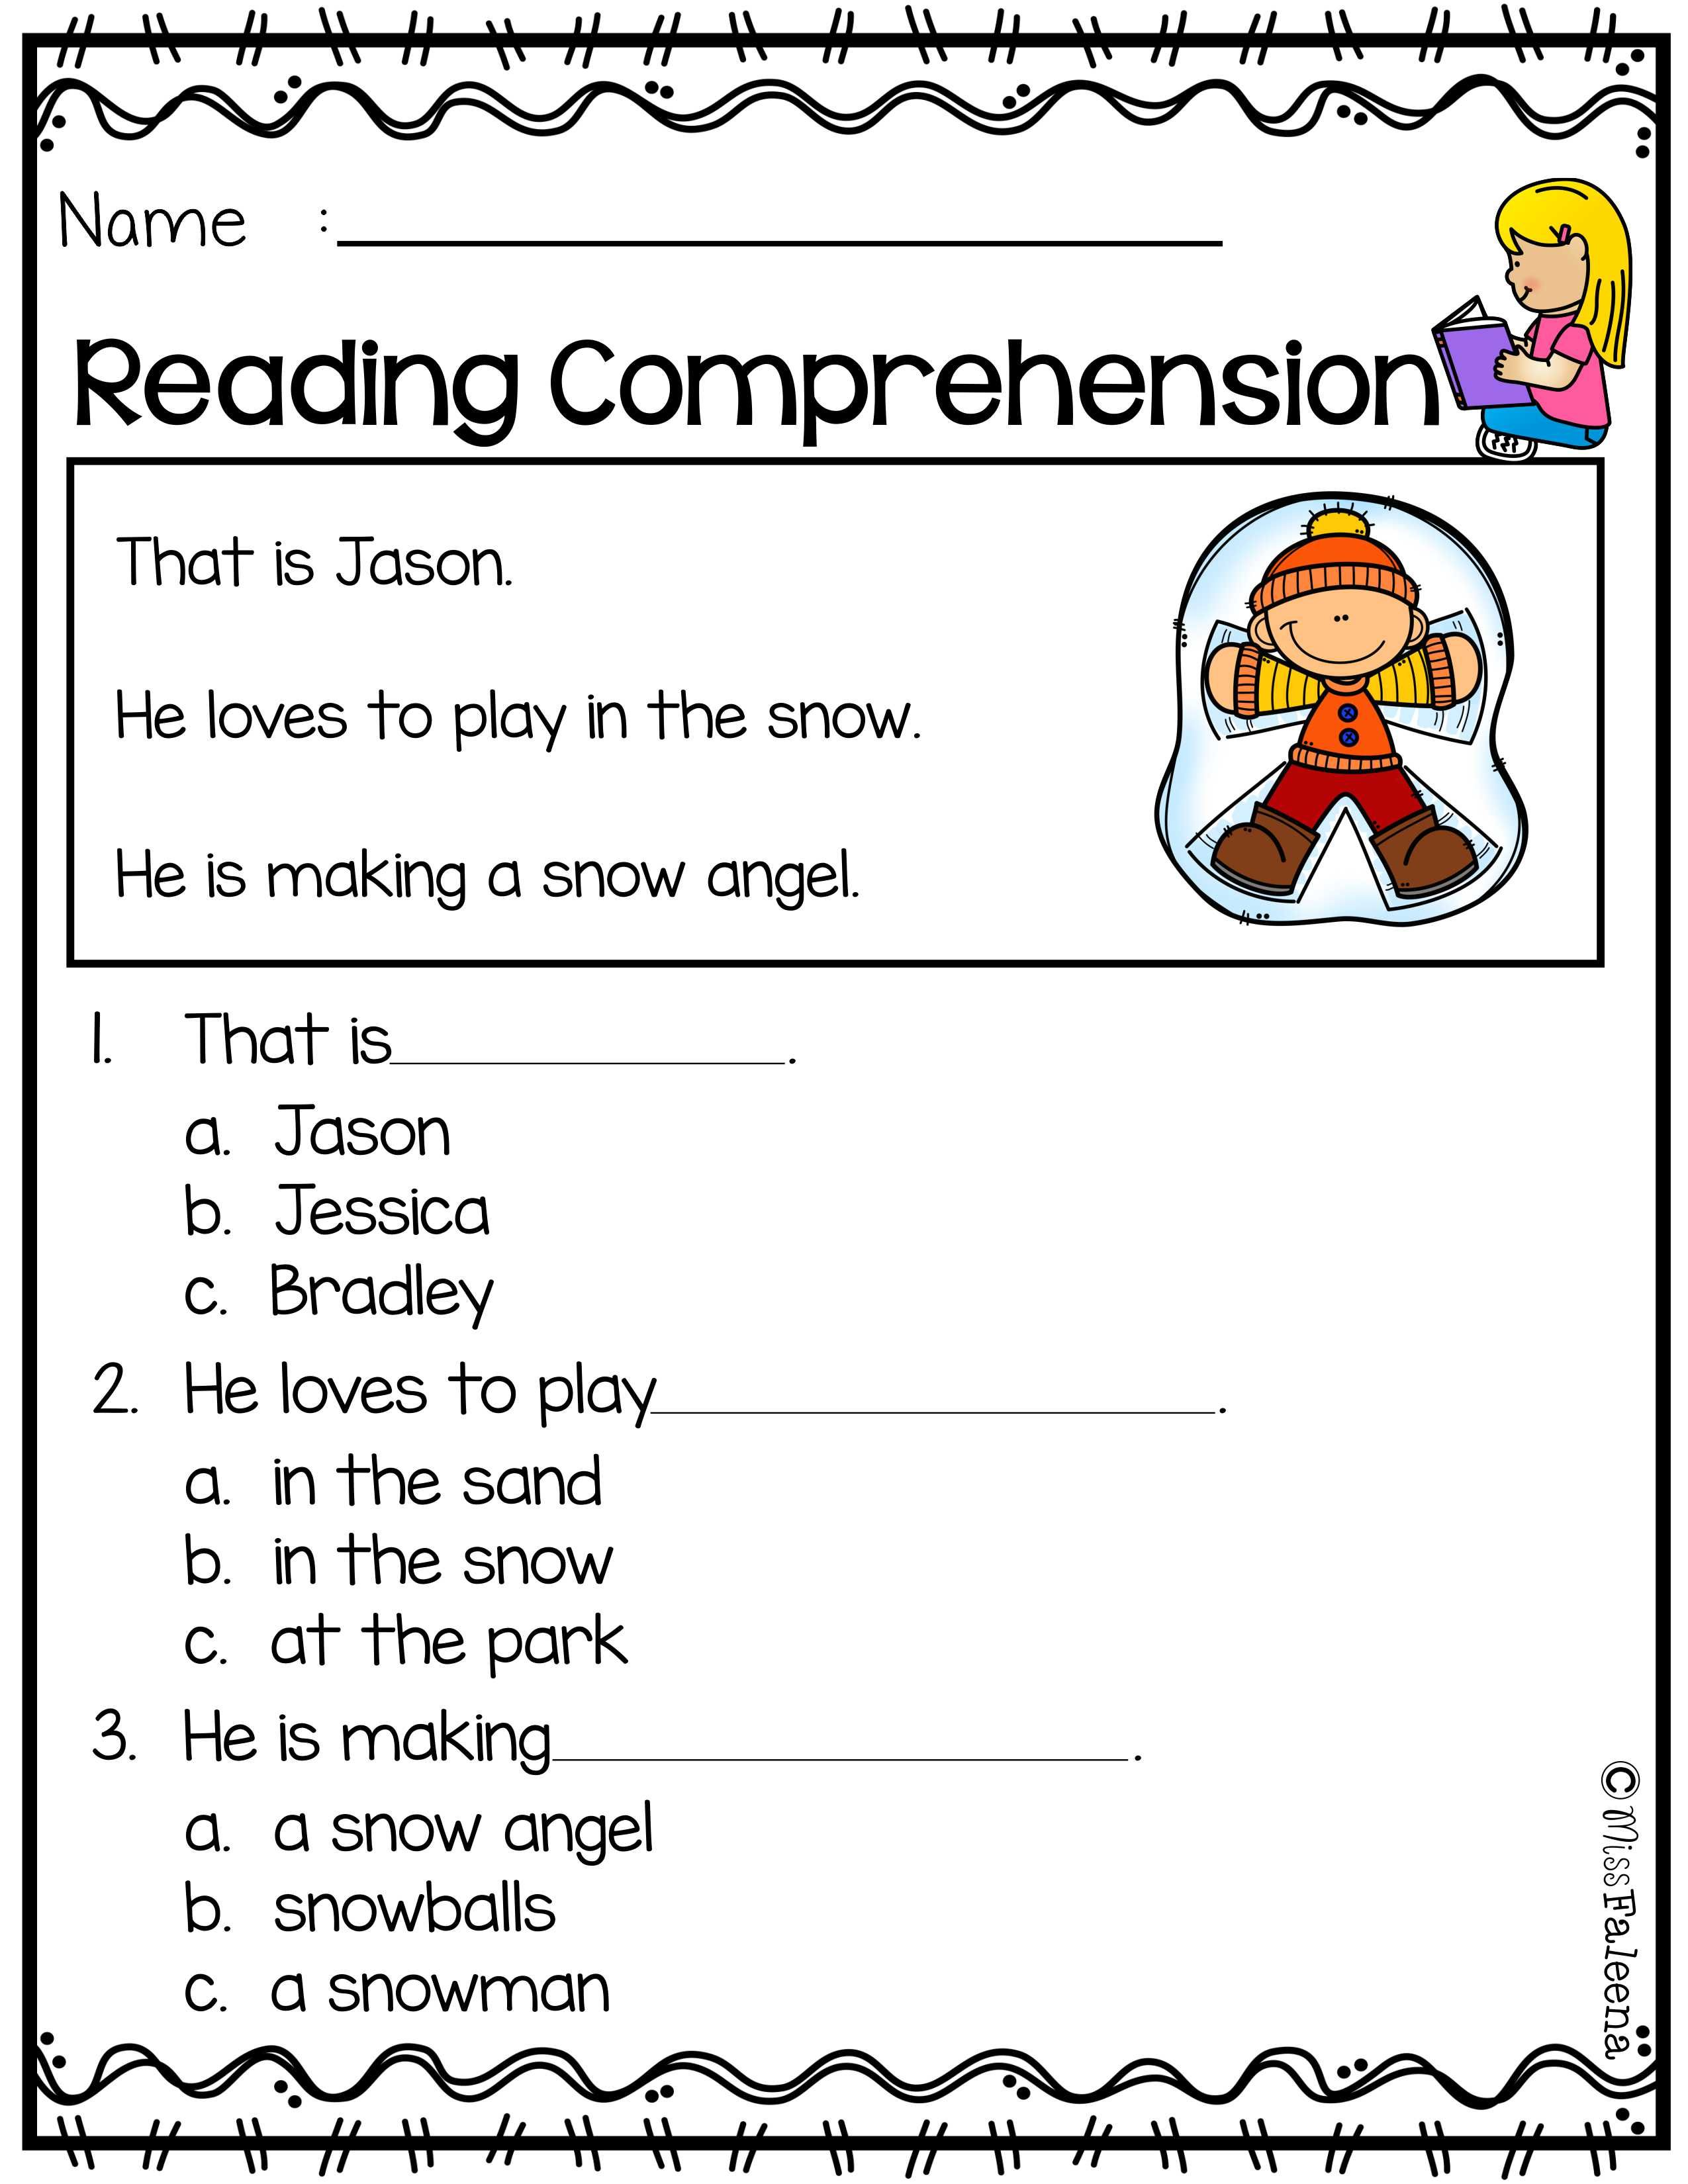 Free Reading Worksheets For Kids